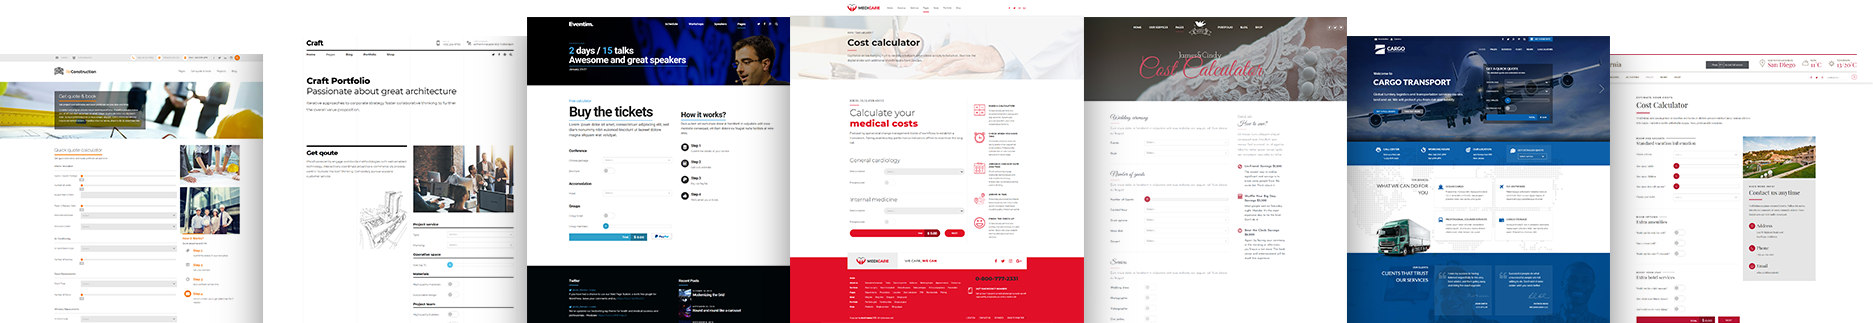 http://cost-calculator.bold-themes.com/new-main-demo/wp-content/uploads/sites/2/2018/04/demos.png